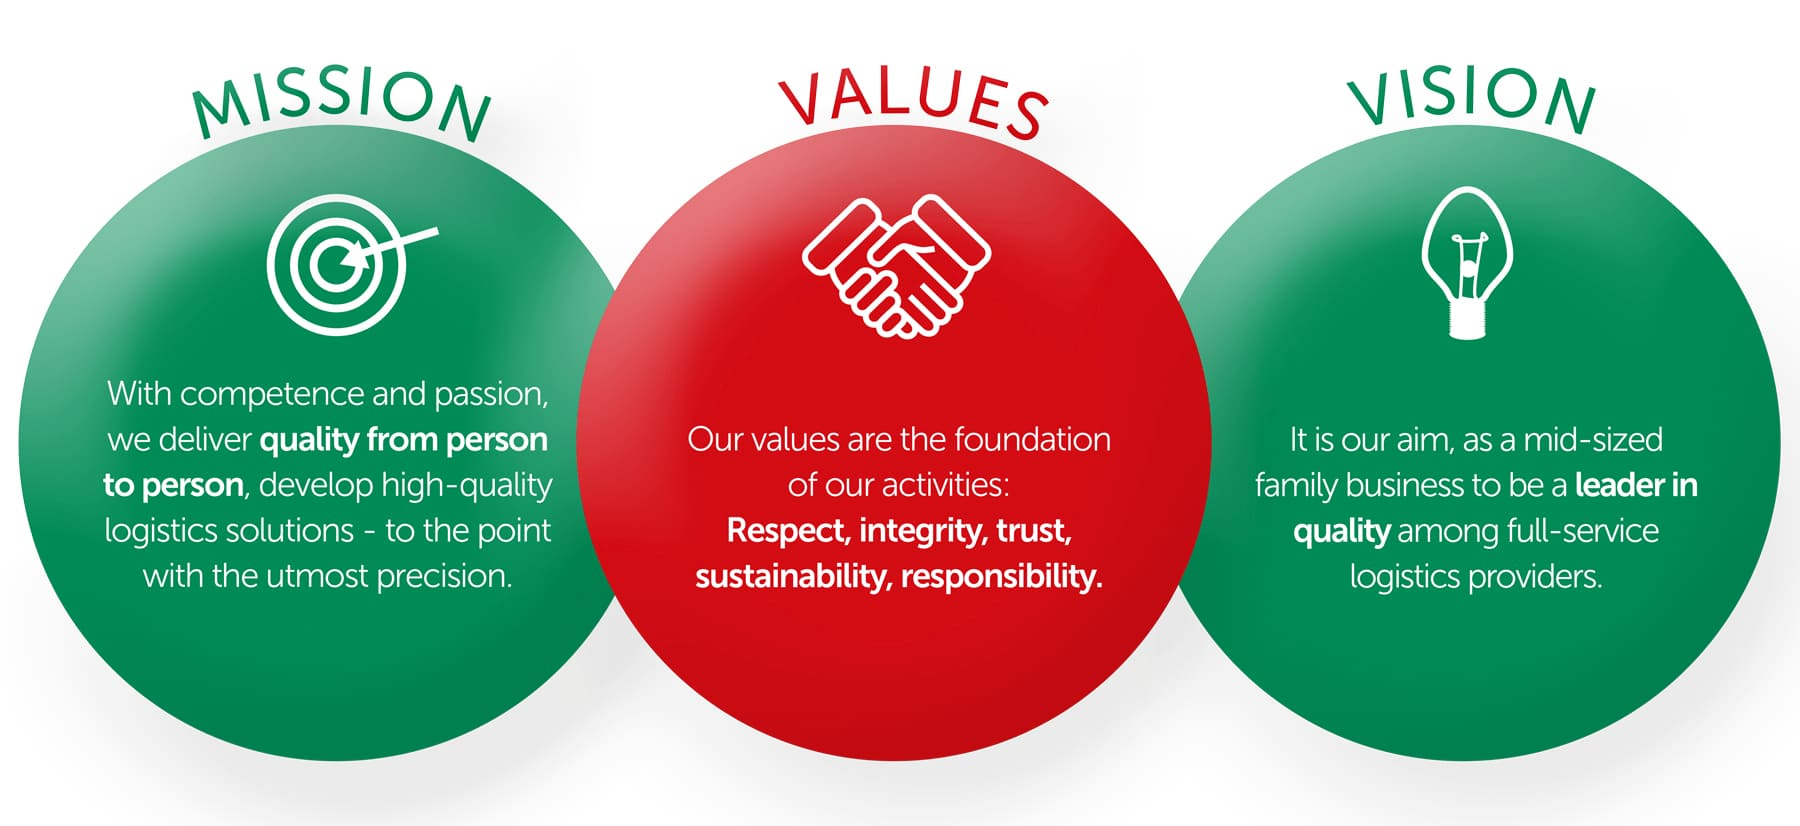 Mission Vision Values Graphic